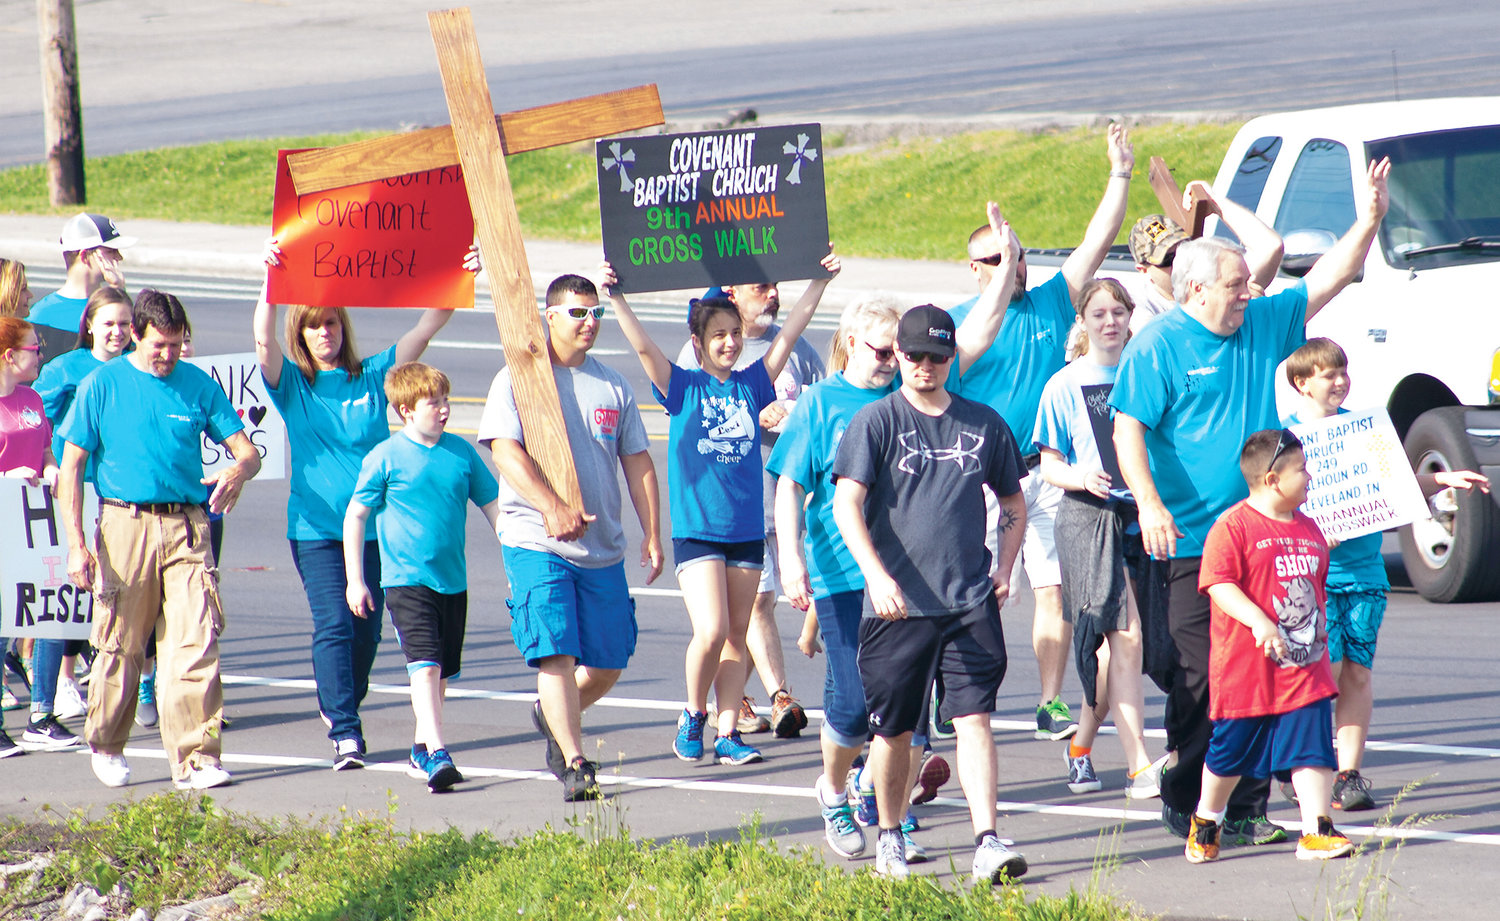 COVENANT BAPTIST'S Youth Ministry members are enthusiastic participants in the congregation's annual Easter Cross Walk each year. Here, participants in a previous walk advanced from The Village Green to Farmland Corner, carrying the wooden cross.